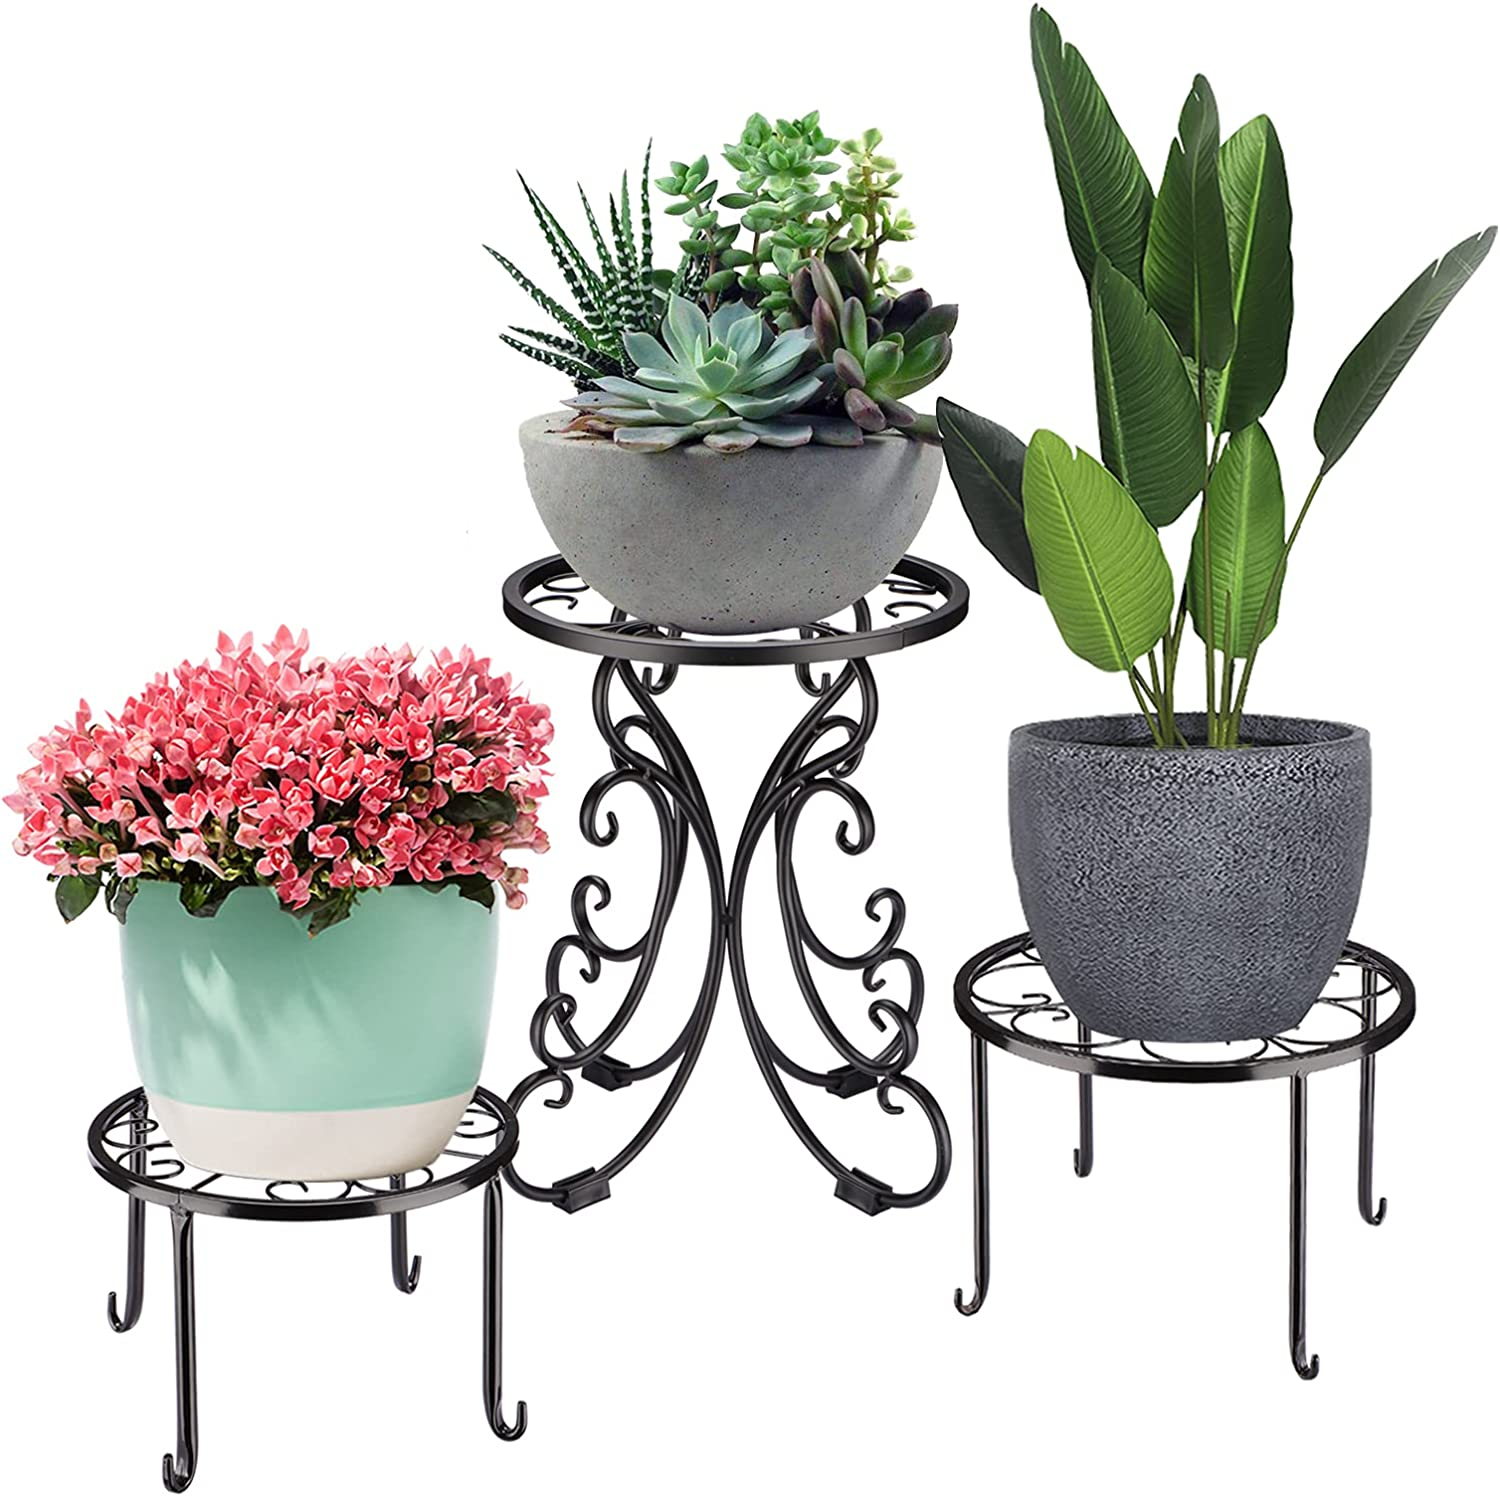 Durppur Potted Black Plant Stand 3-Pack Outdoor Reservation security Ne Metal Indoor